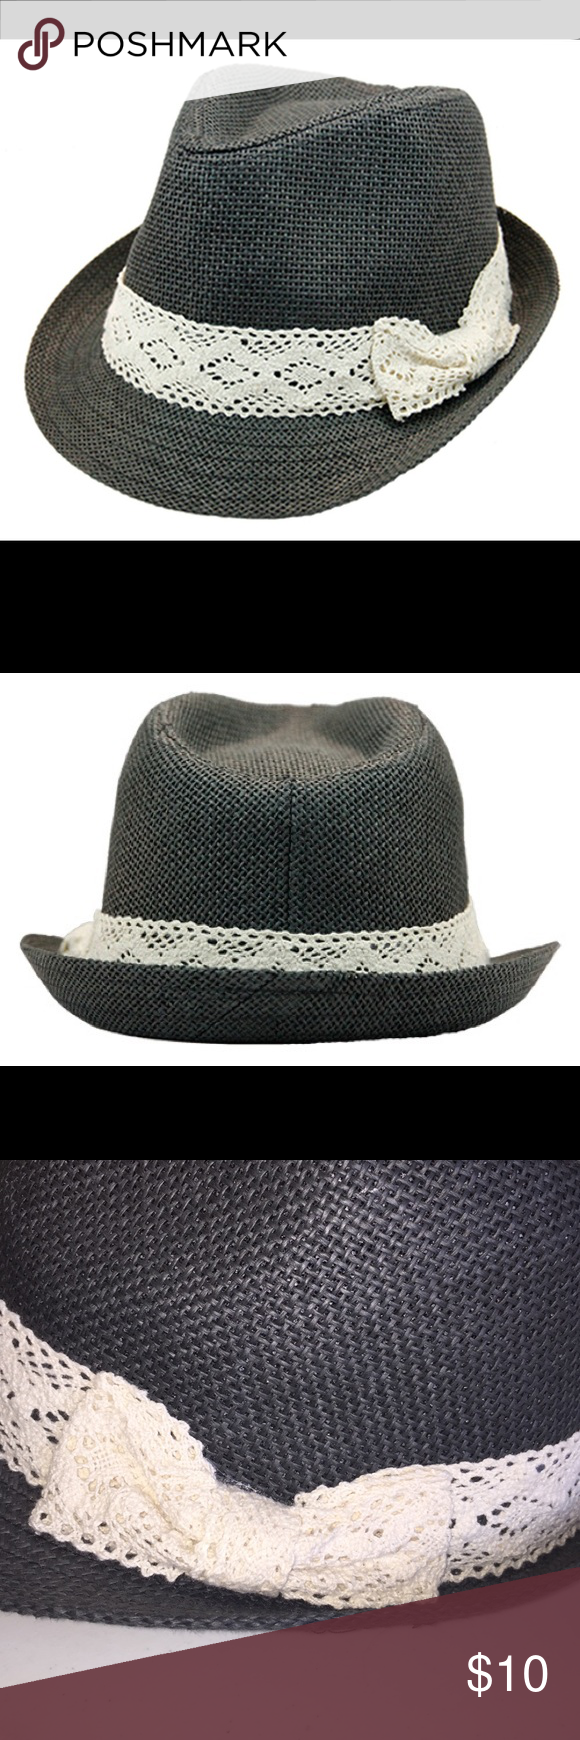 e436ea414f858 New women s lace band fedora Paper straw fedora. Crown measures 4 inch with  inner sweatband. Laced ribbon band around hat crown. Ones size fits most  women ...